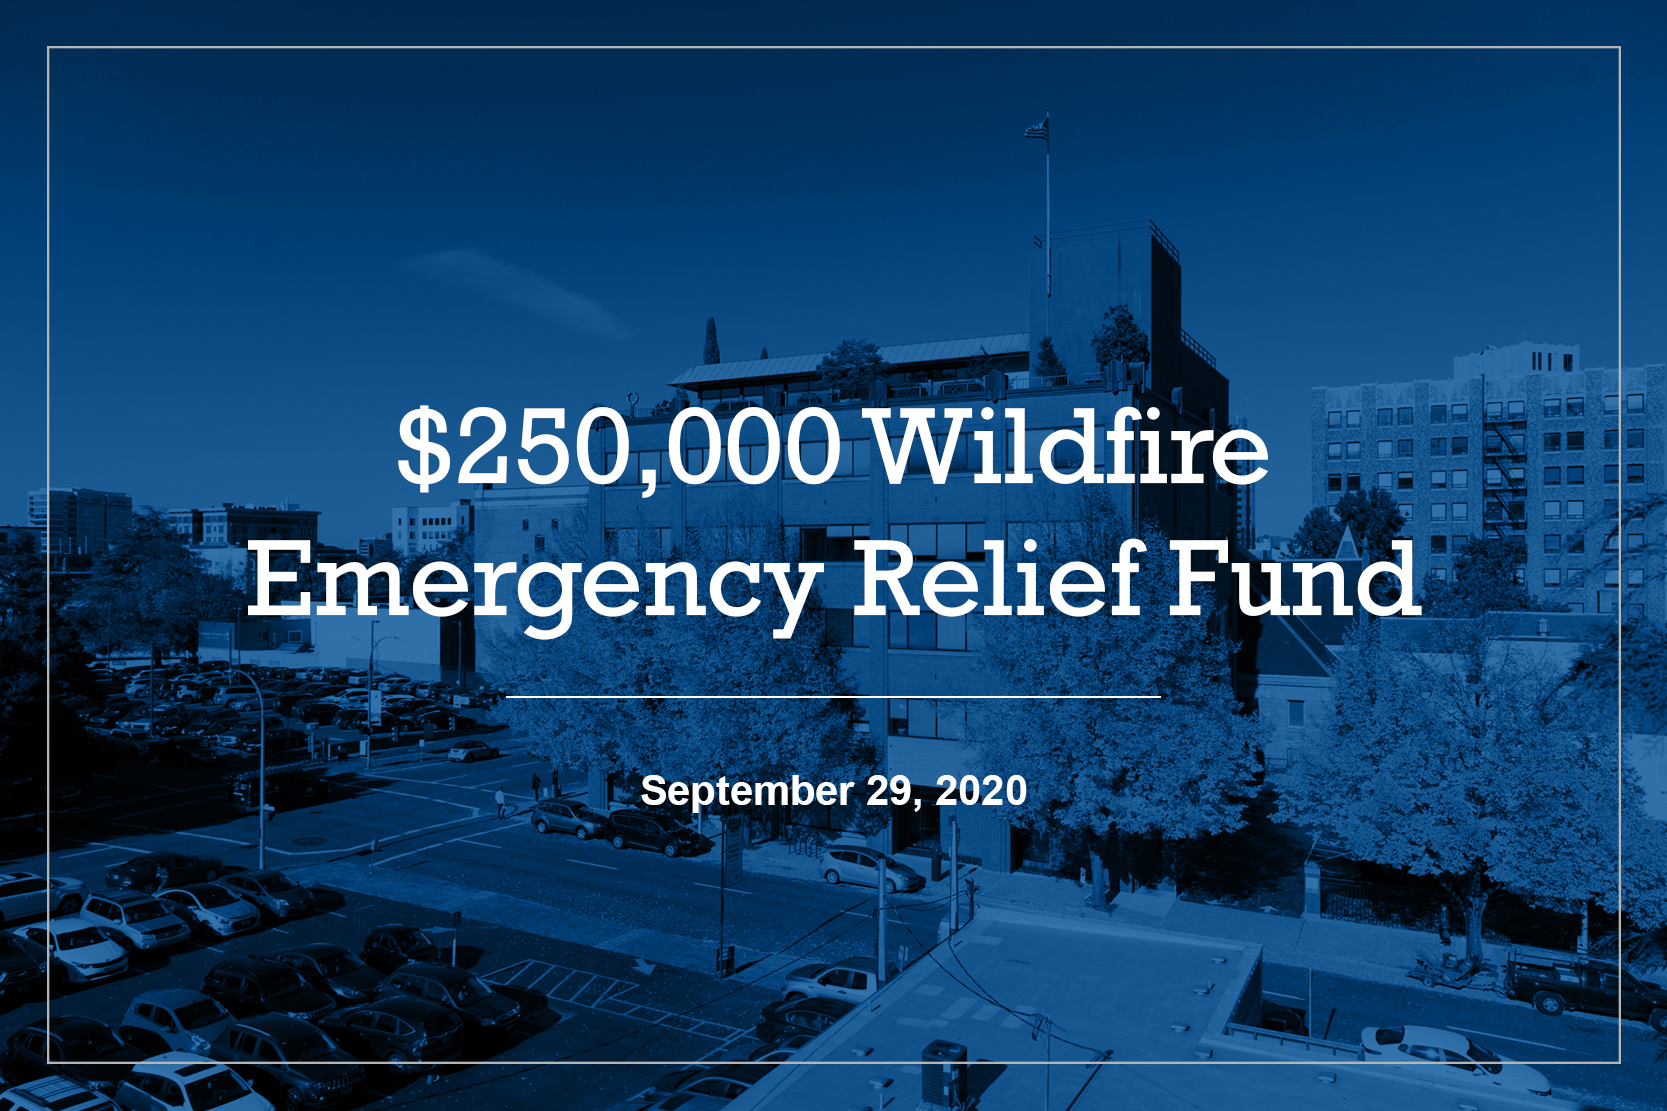 Volunteers of America Oregon wildfire relief fund